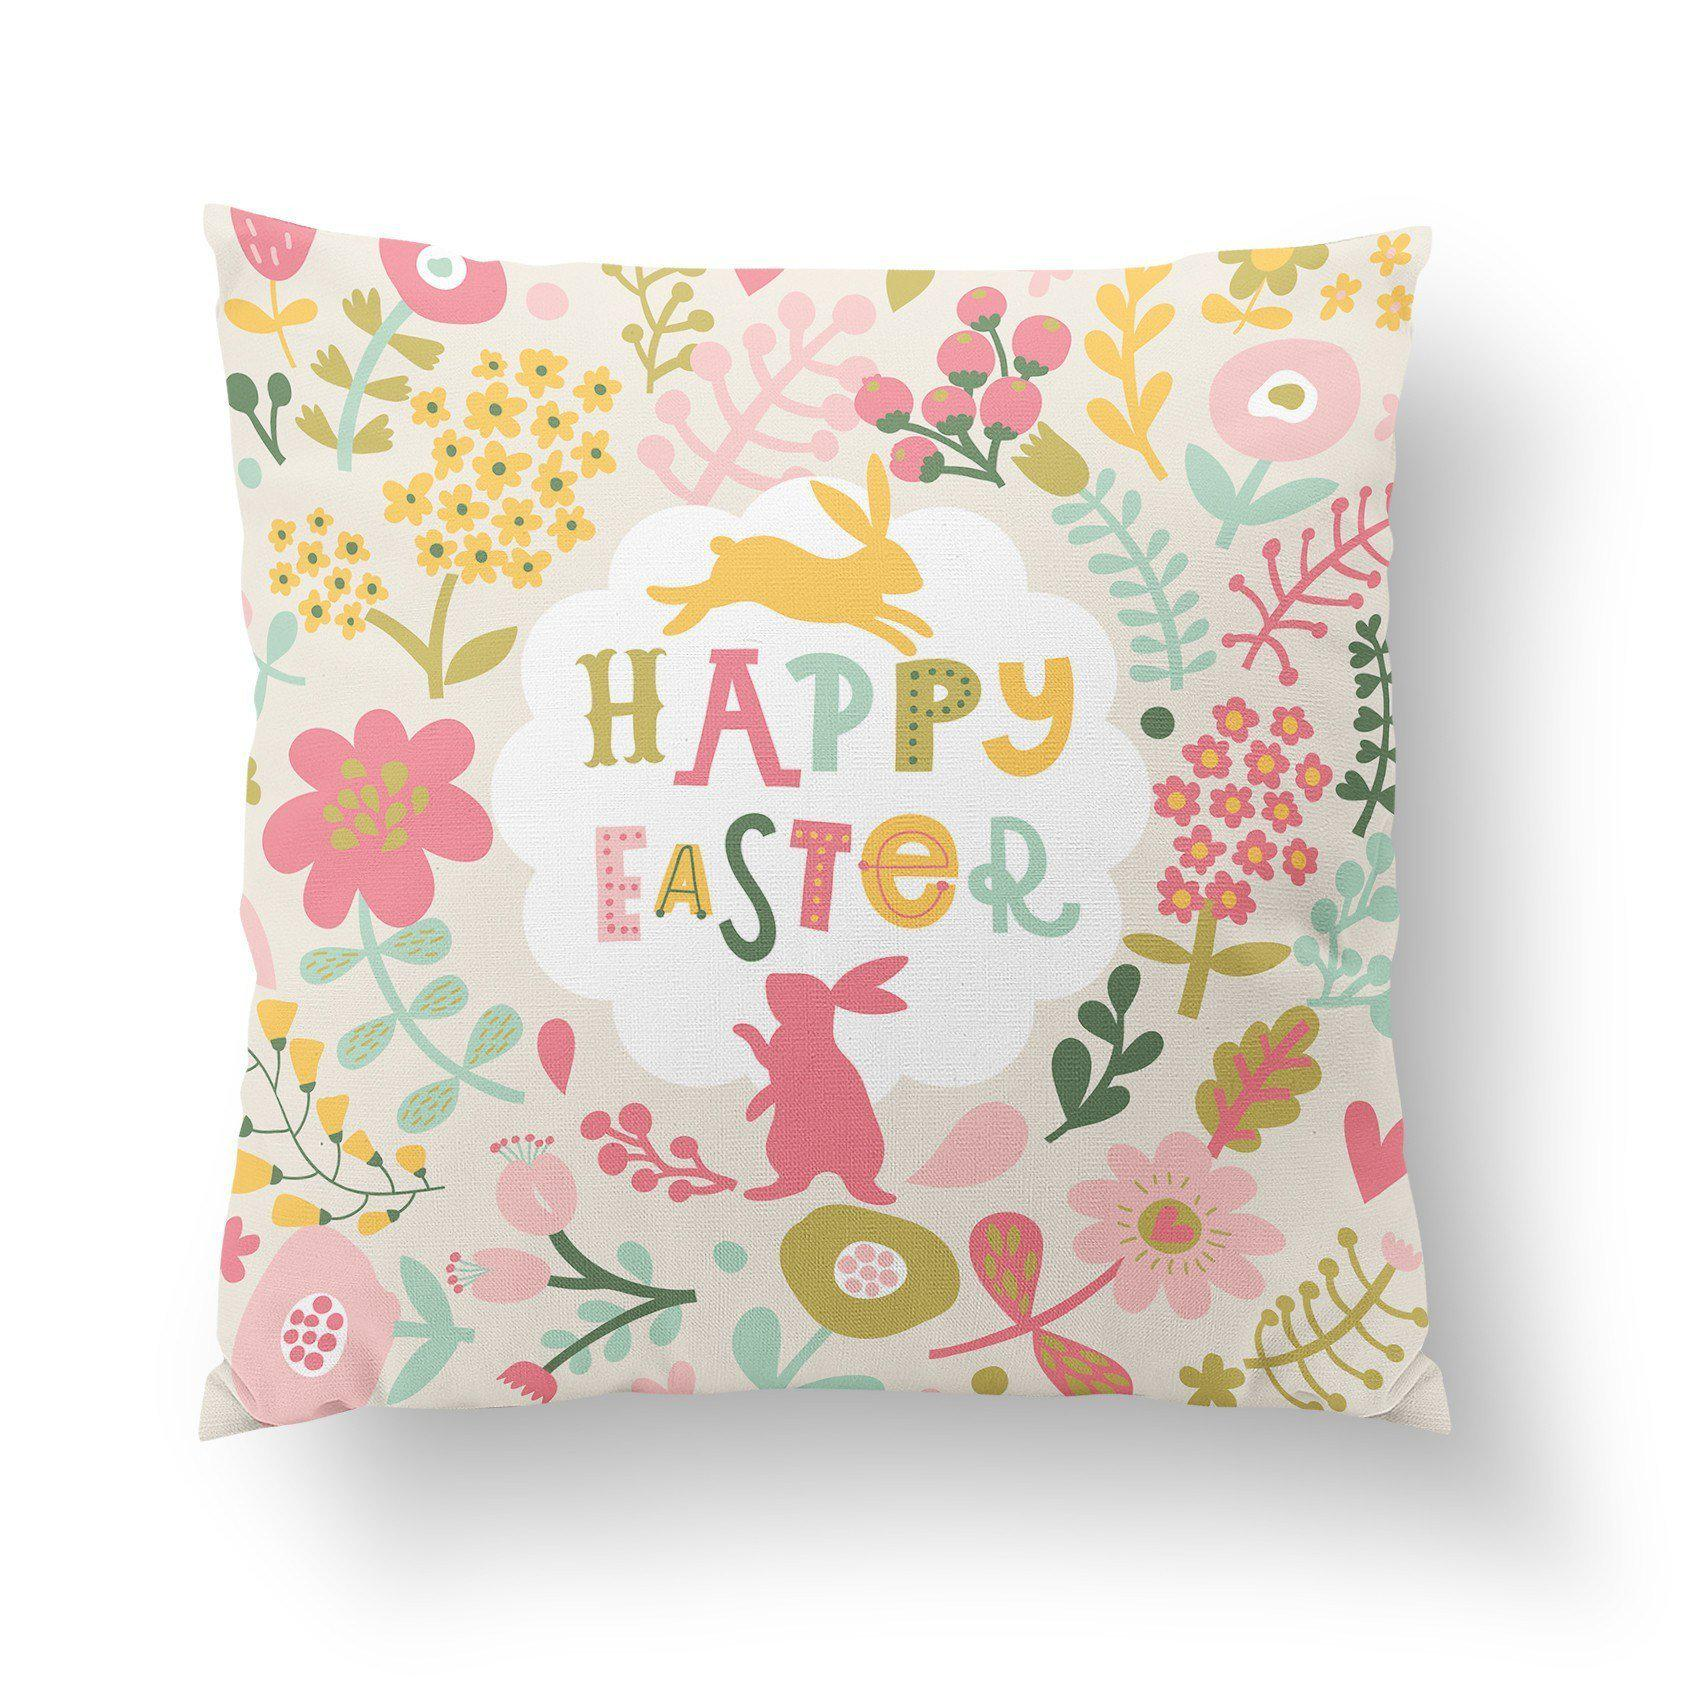 Easter Pillow Cover - Pillow Covers - W.FRANCIS